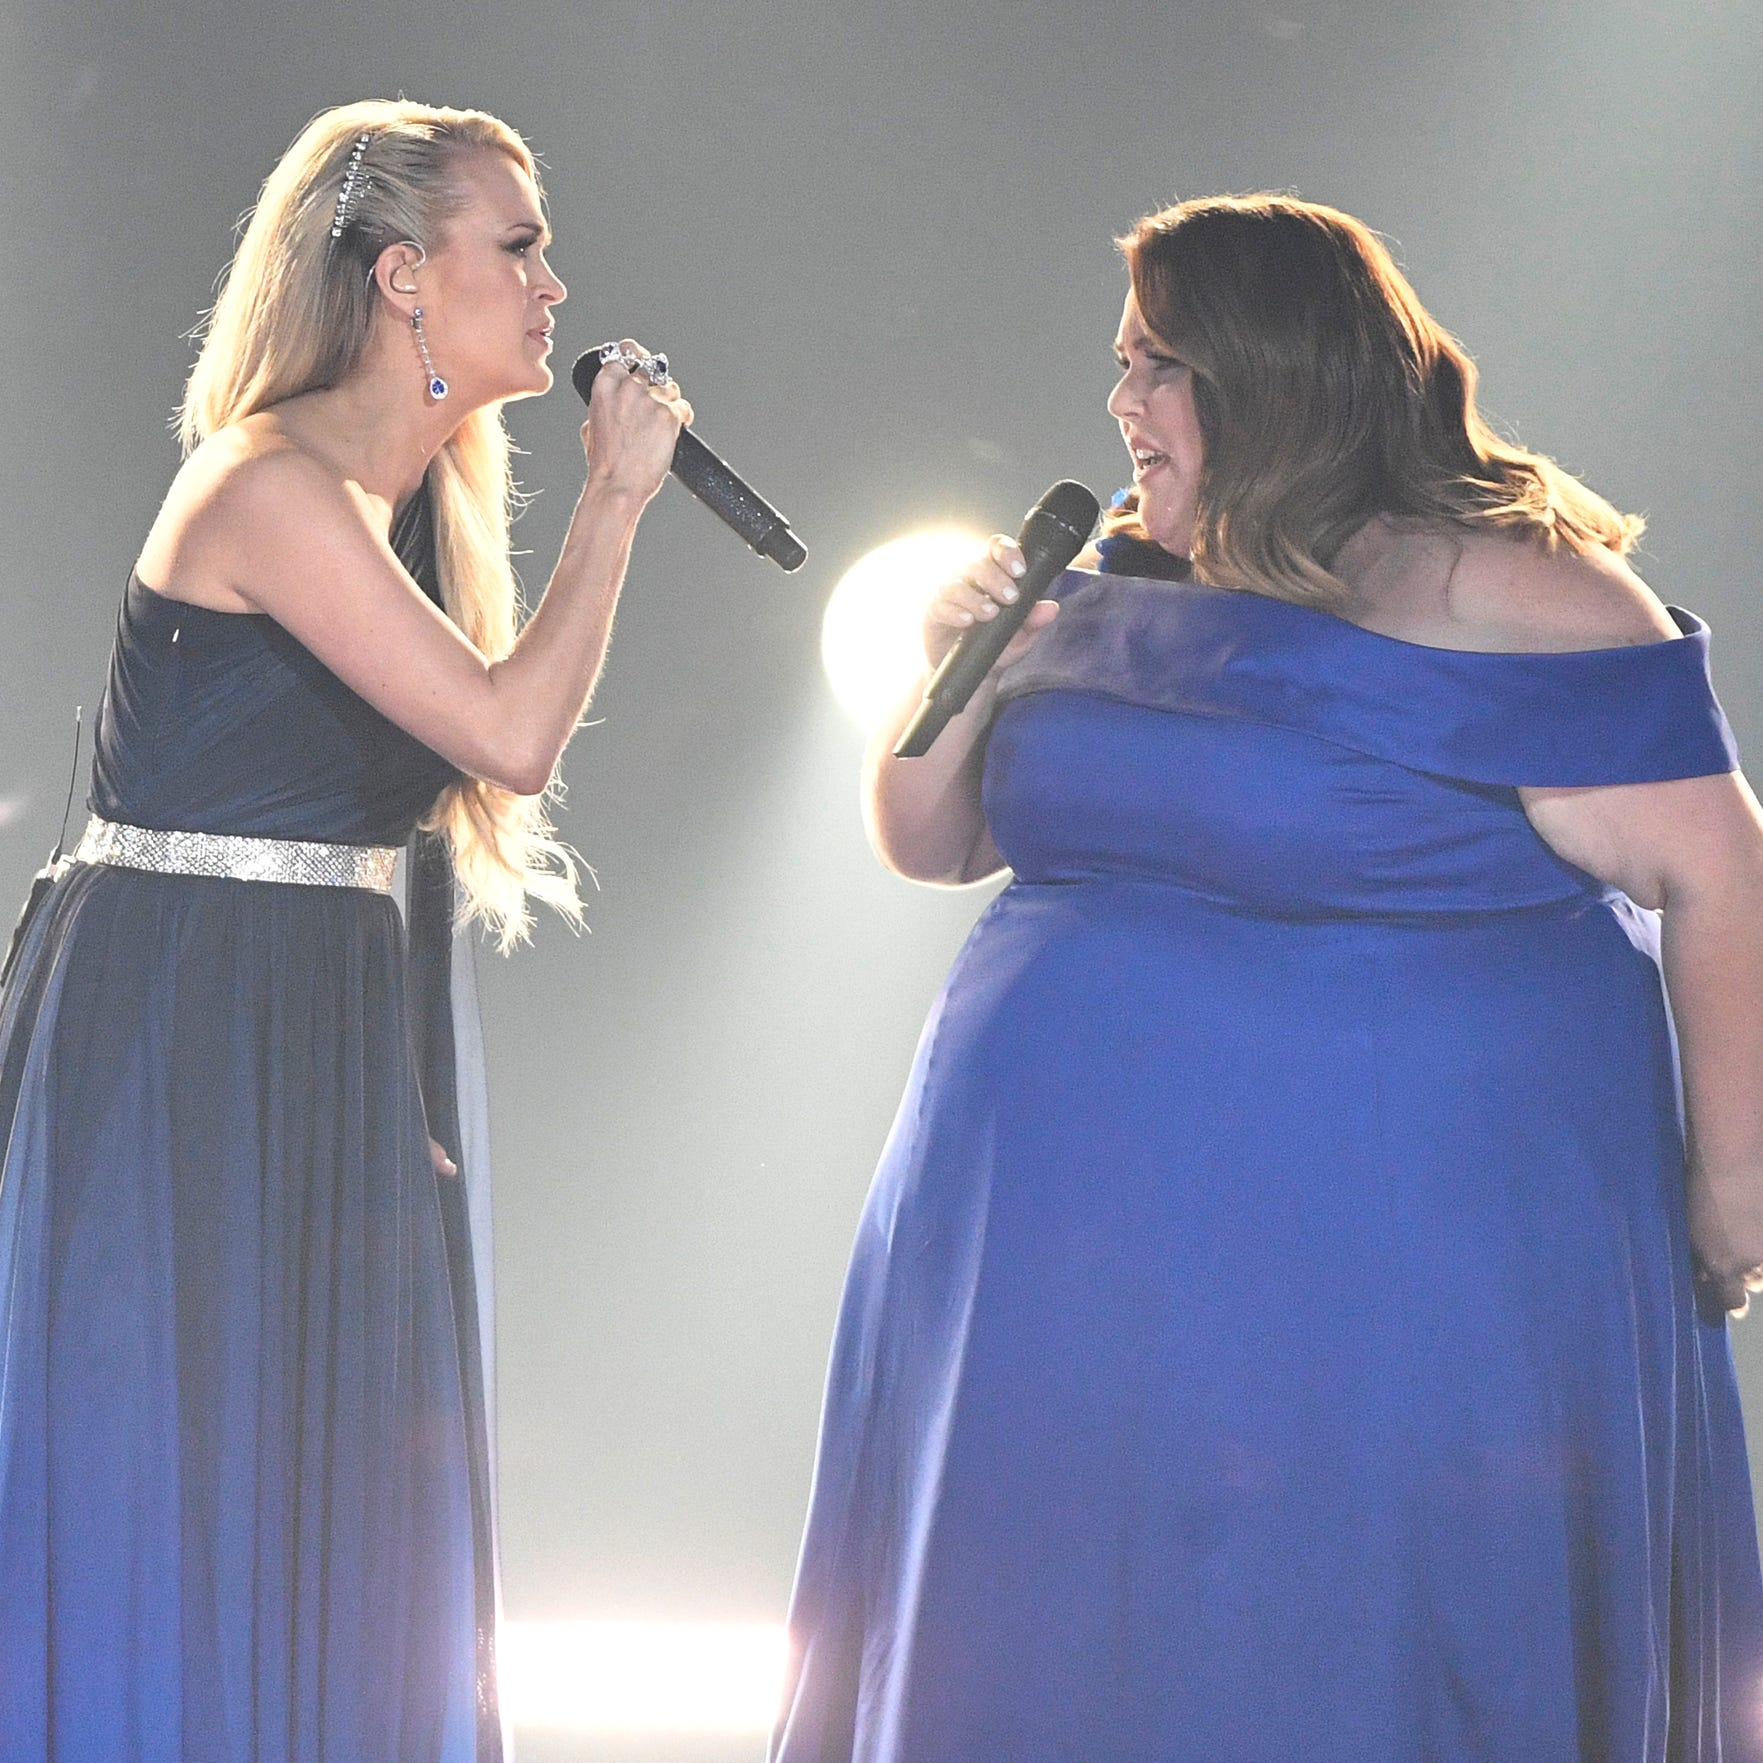 Carrie Underwood, left, and Chrissy Metz, perform during the 54TH Academy of Country Music Awards Sunday, April 7, 2019, in Las Vegas, Nev.  ORG XMIT: TNNAT (Via OlyDrop)